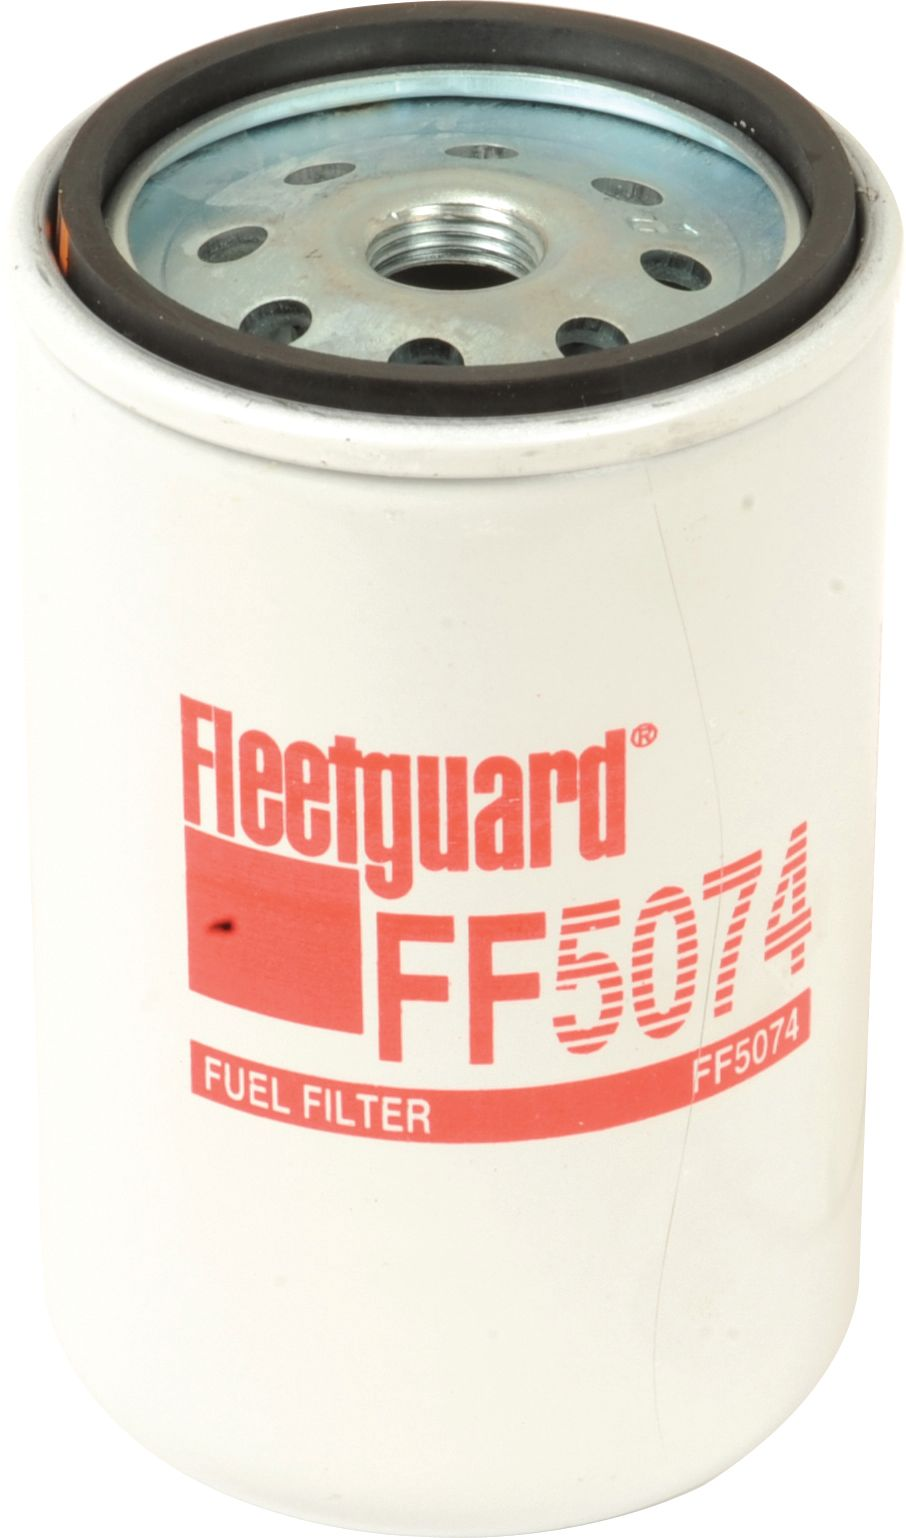 LAMBORGHINI FUEL FILTER FF5074 109059